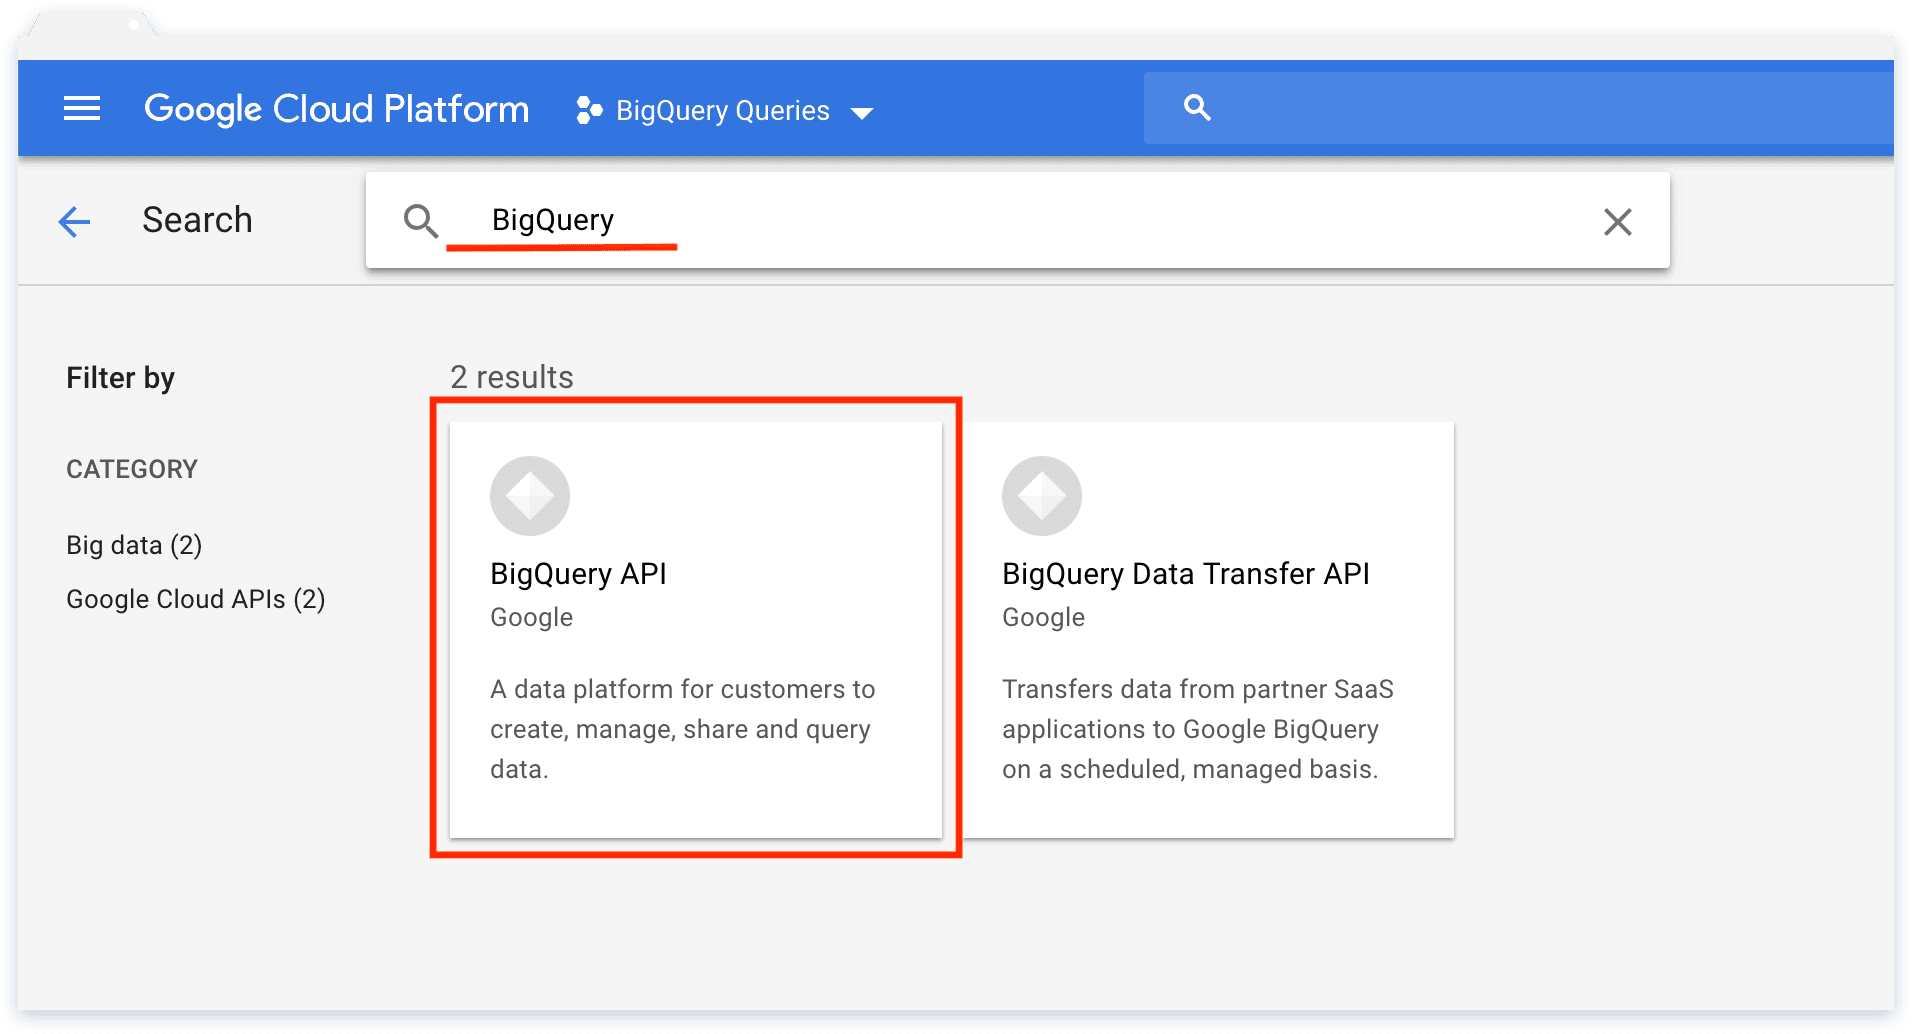 Bigquery Queries in Google Cloud Platform